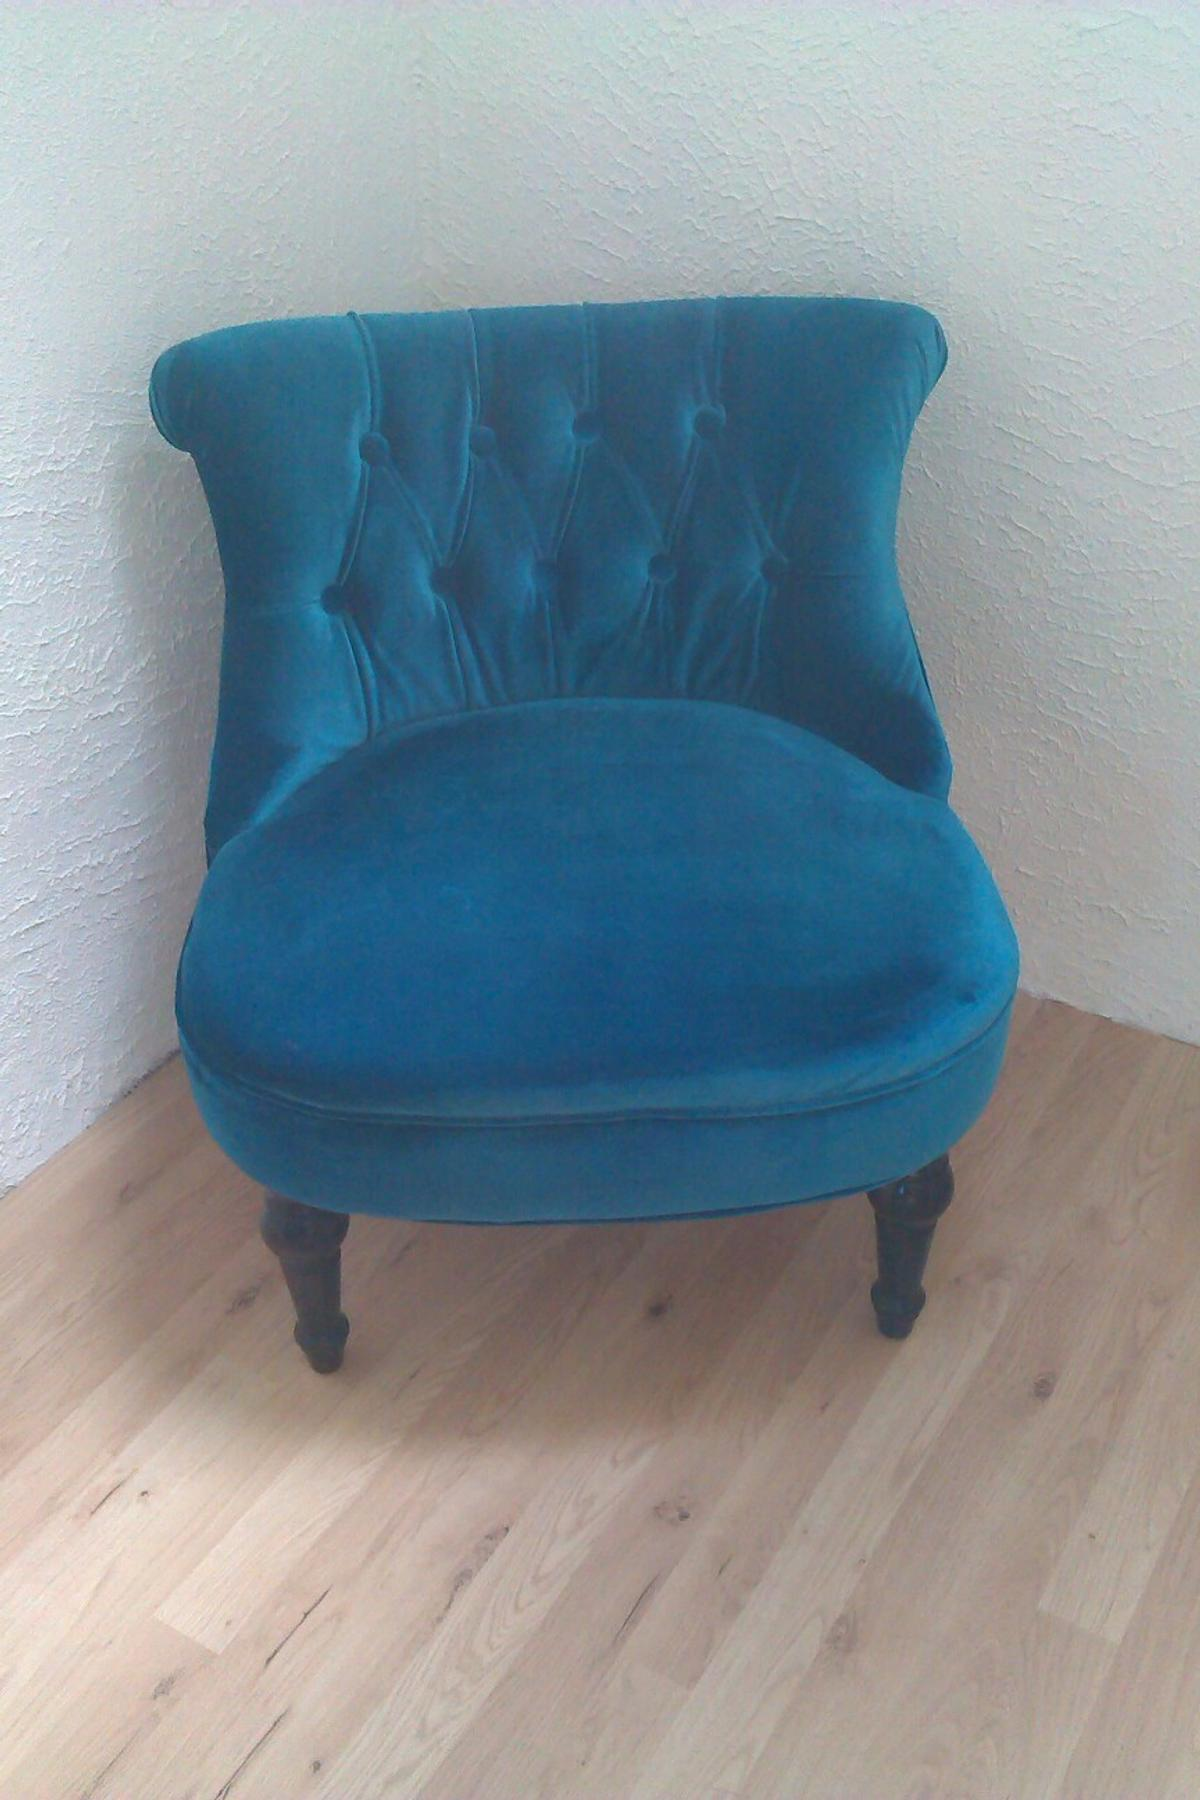 Sessel Blau Chesterfield Sessel Blau In 67699 Schneckenhausen For €110.00 For Sale | Shpock